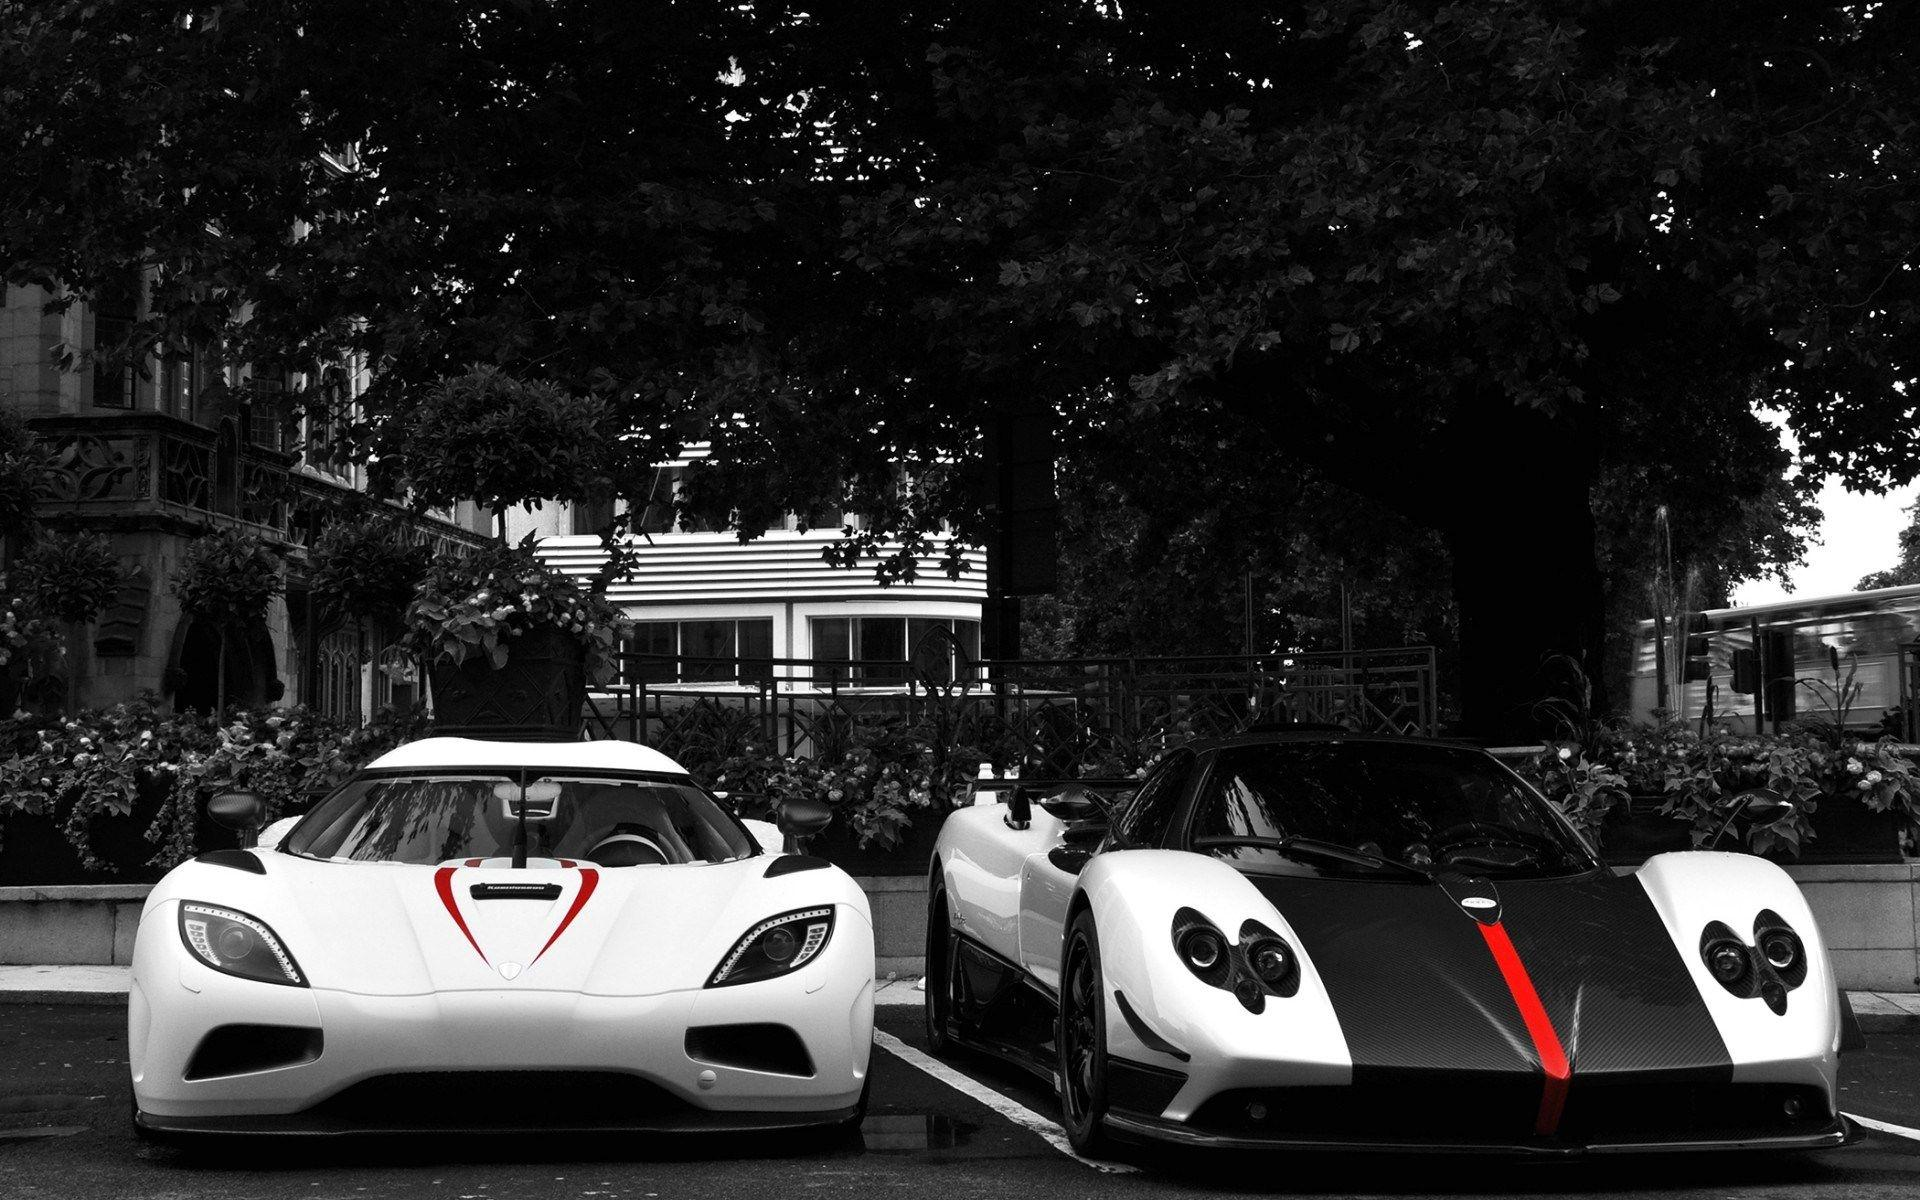 Free Download Koenigsegg Agera R Backgrounds